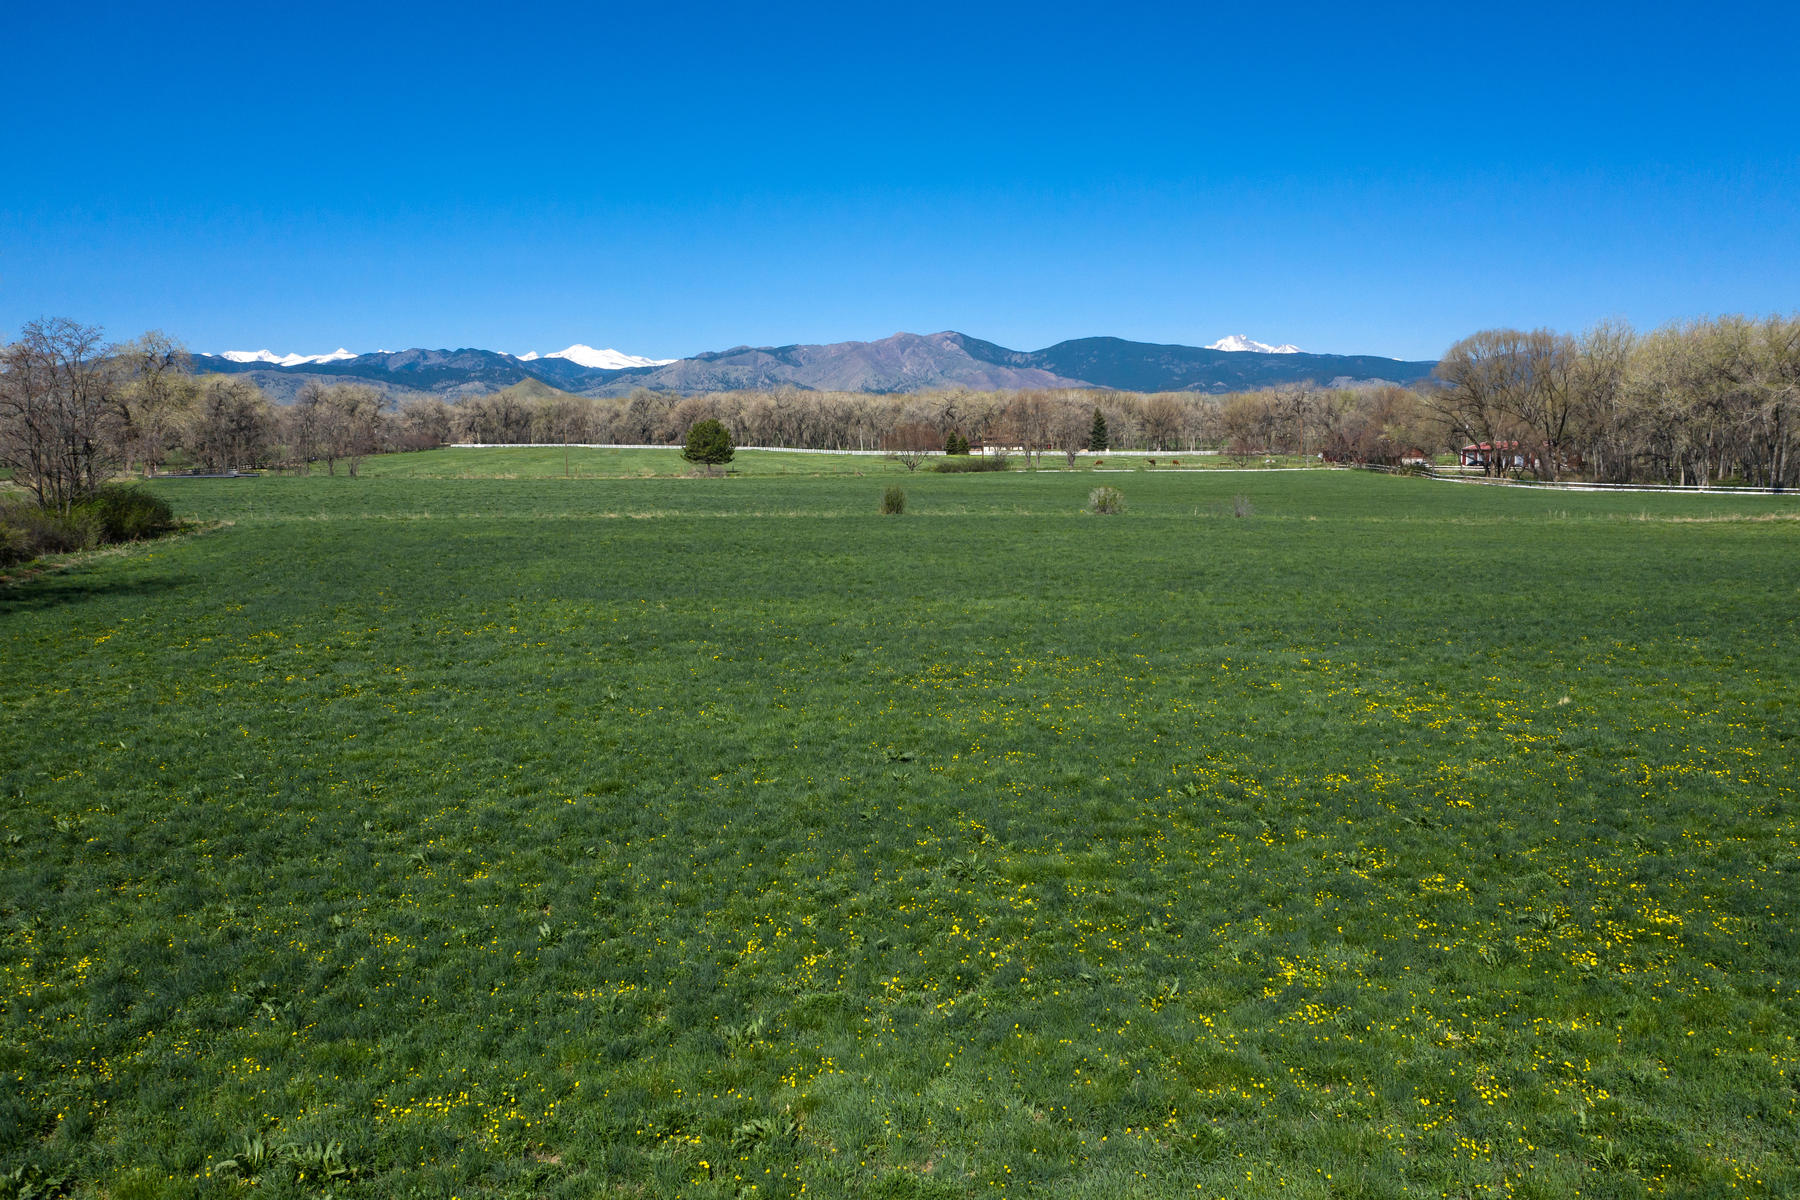 Land for Sale at Plenty Of Land To Take In The Views 0 Nimbus Rd Niwot, Colorado 80503 United States